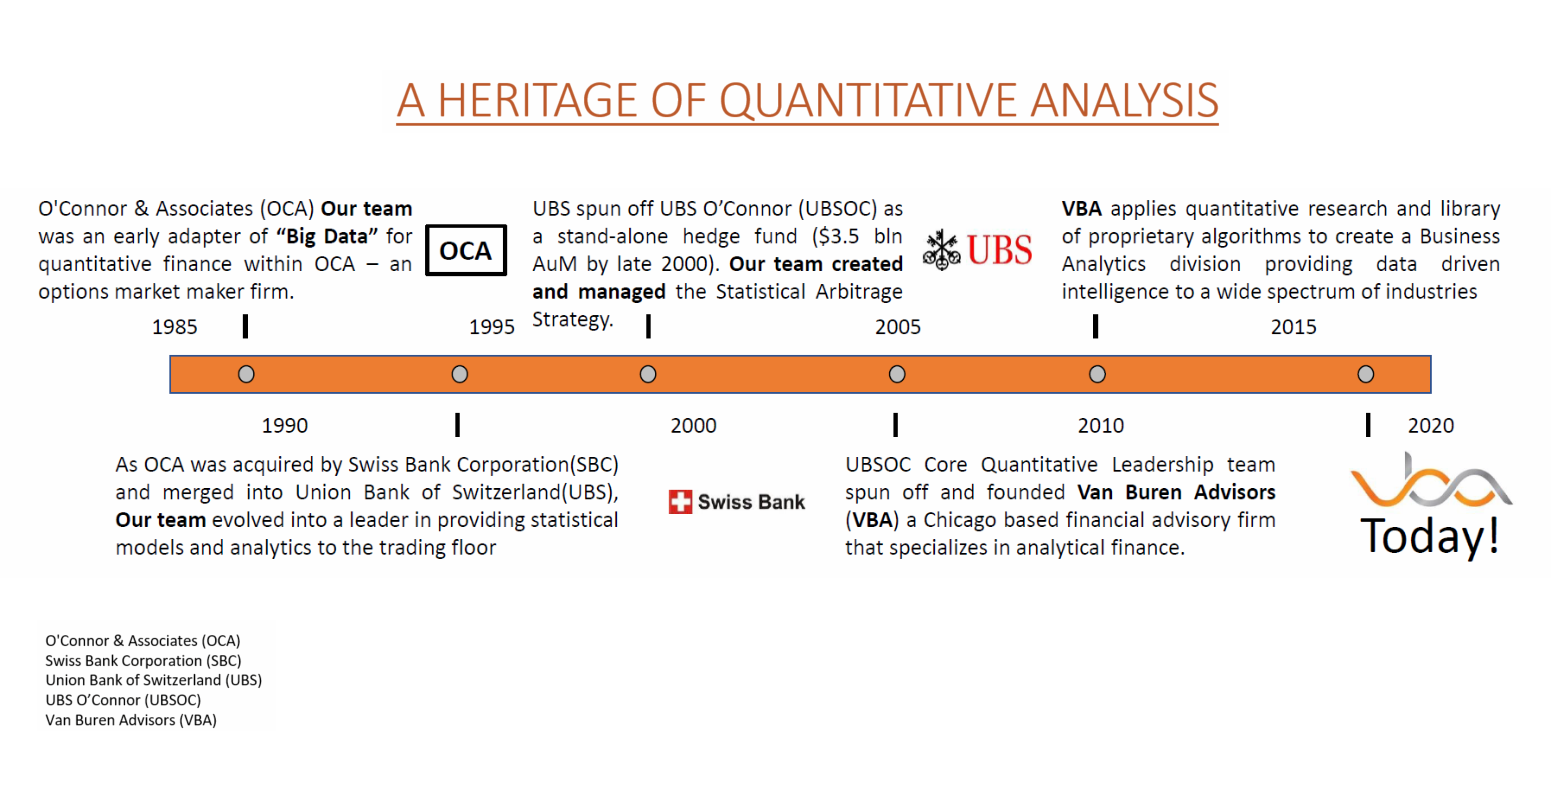 Van Buren Advisors has a heritage of Quantitative Analysis. In 1985, our team was an early adapter of Big Data within OCA - an options market firm. In 1990, OCA was acquired by Swiss Bank which was then acquired by UBS. Our team provided statistical models and analytics to the trading floor. In 2000, UBS spun off UBS O'Connor as a hedge fund. Out team created and managed the Statistical Arbitrage Strategy. In 2005, the UBSOC Leadership team founded Van Buren Advisors.